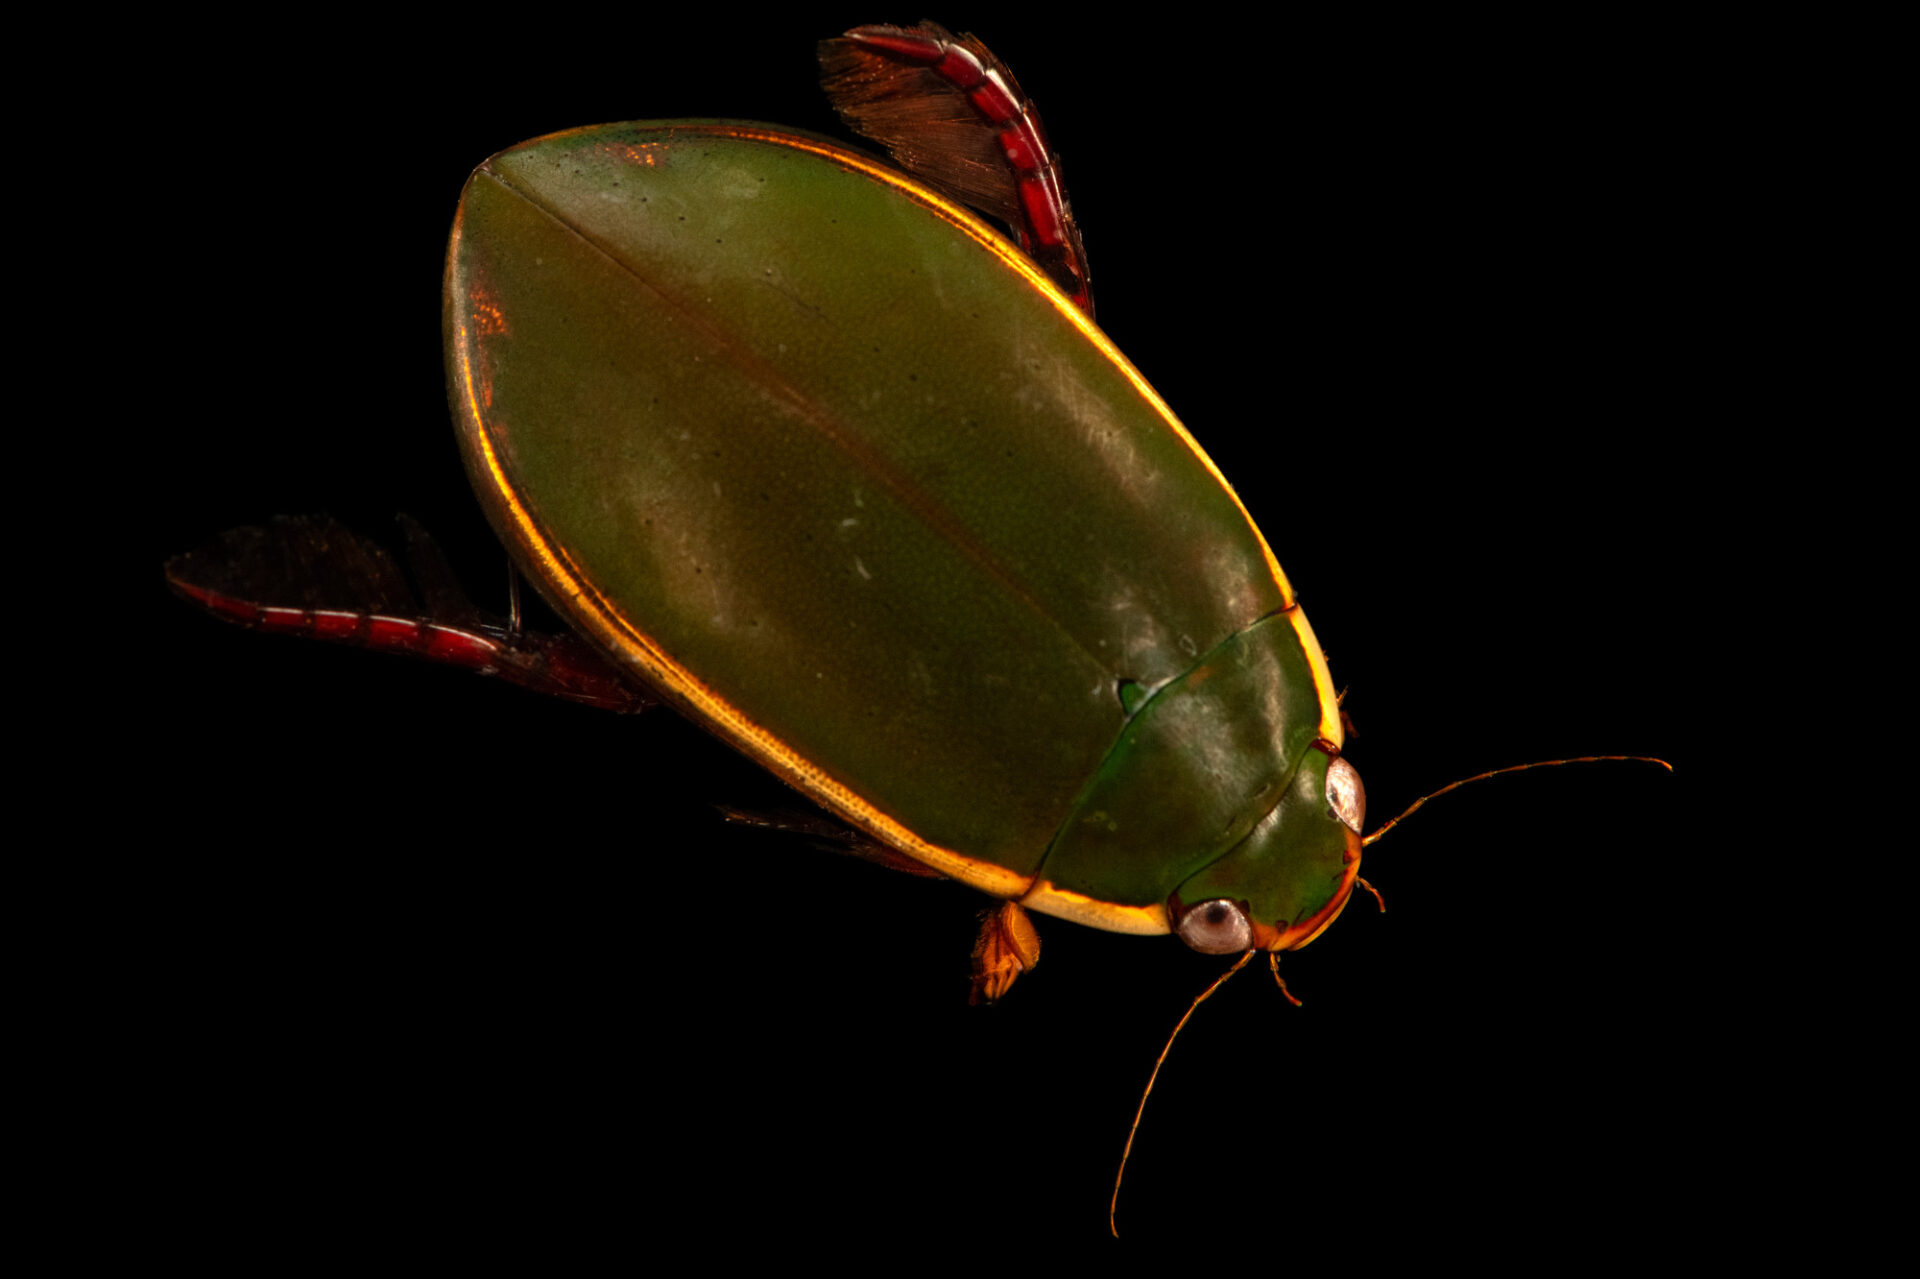 Photo: A predaceous diving beetle (Cybister fimbriolatus) at Gulf Specimen Aquarium in Panacea, FL.